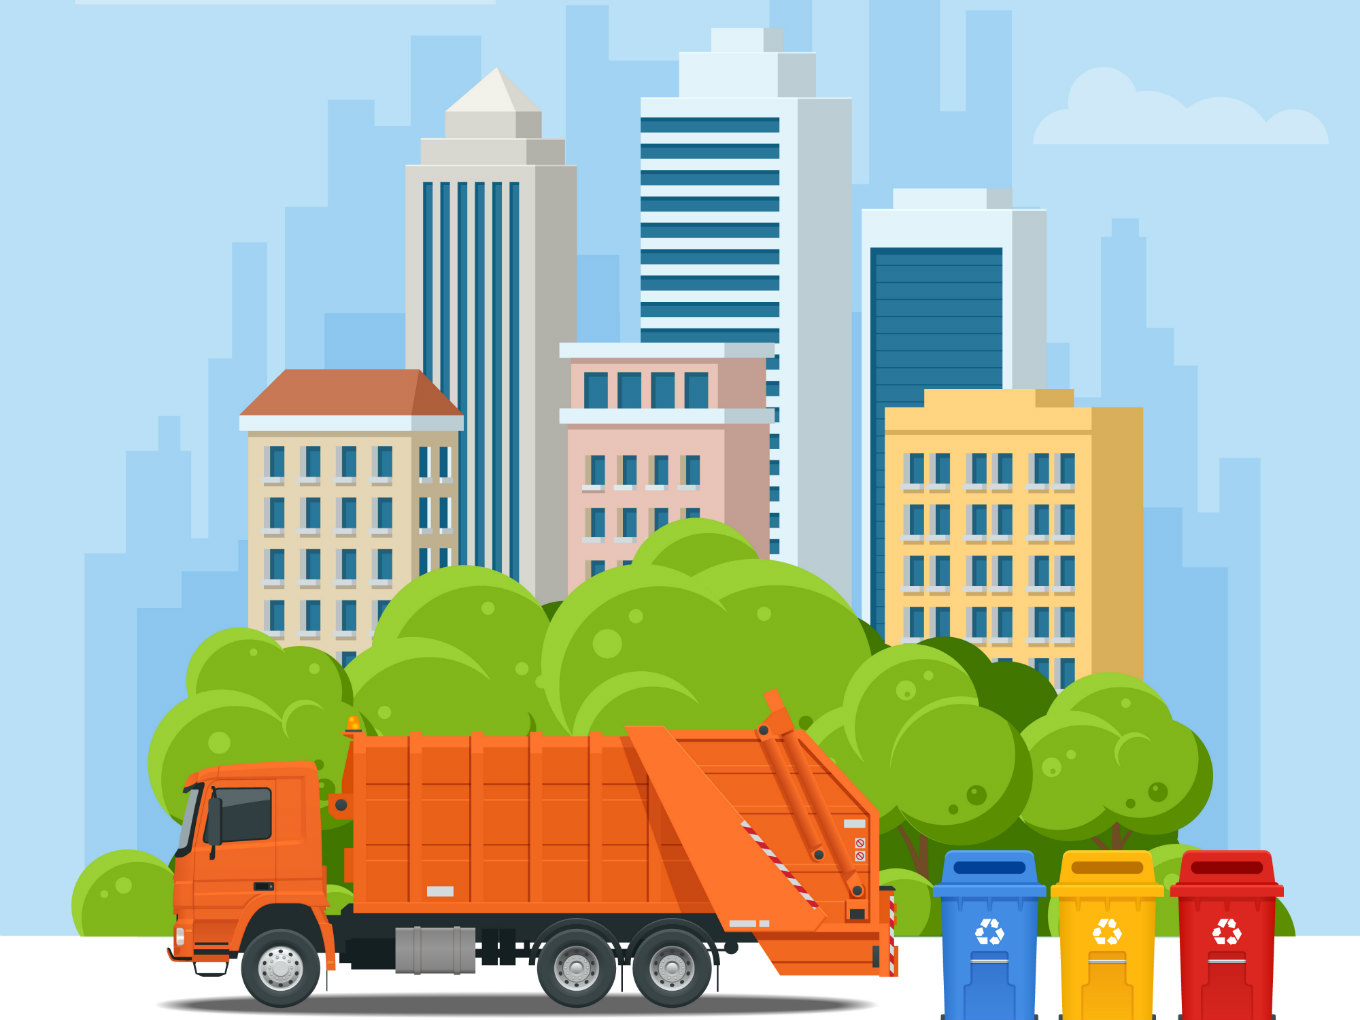 Delhi Gets IoT-Driven Dustbins Which Informs Authorities When Full